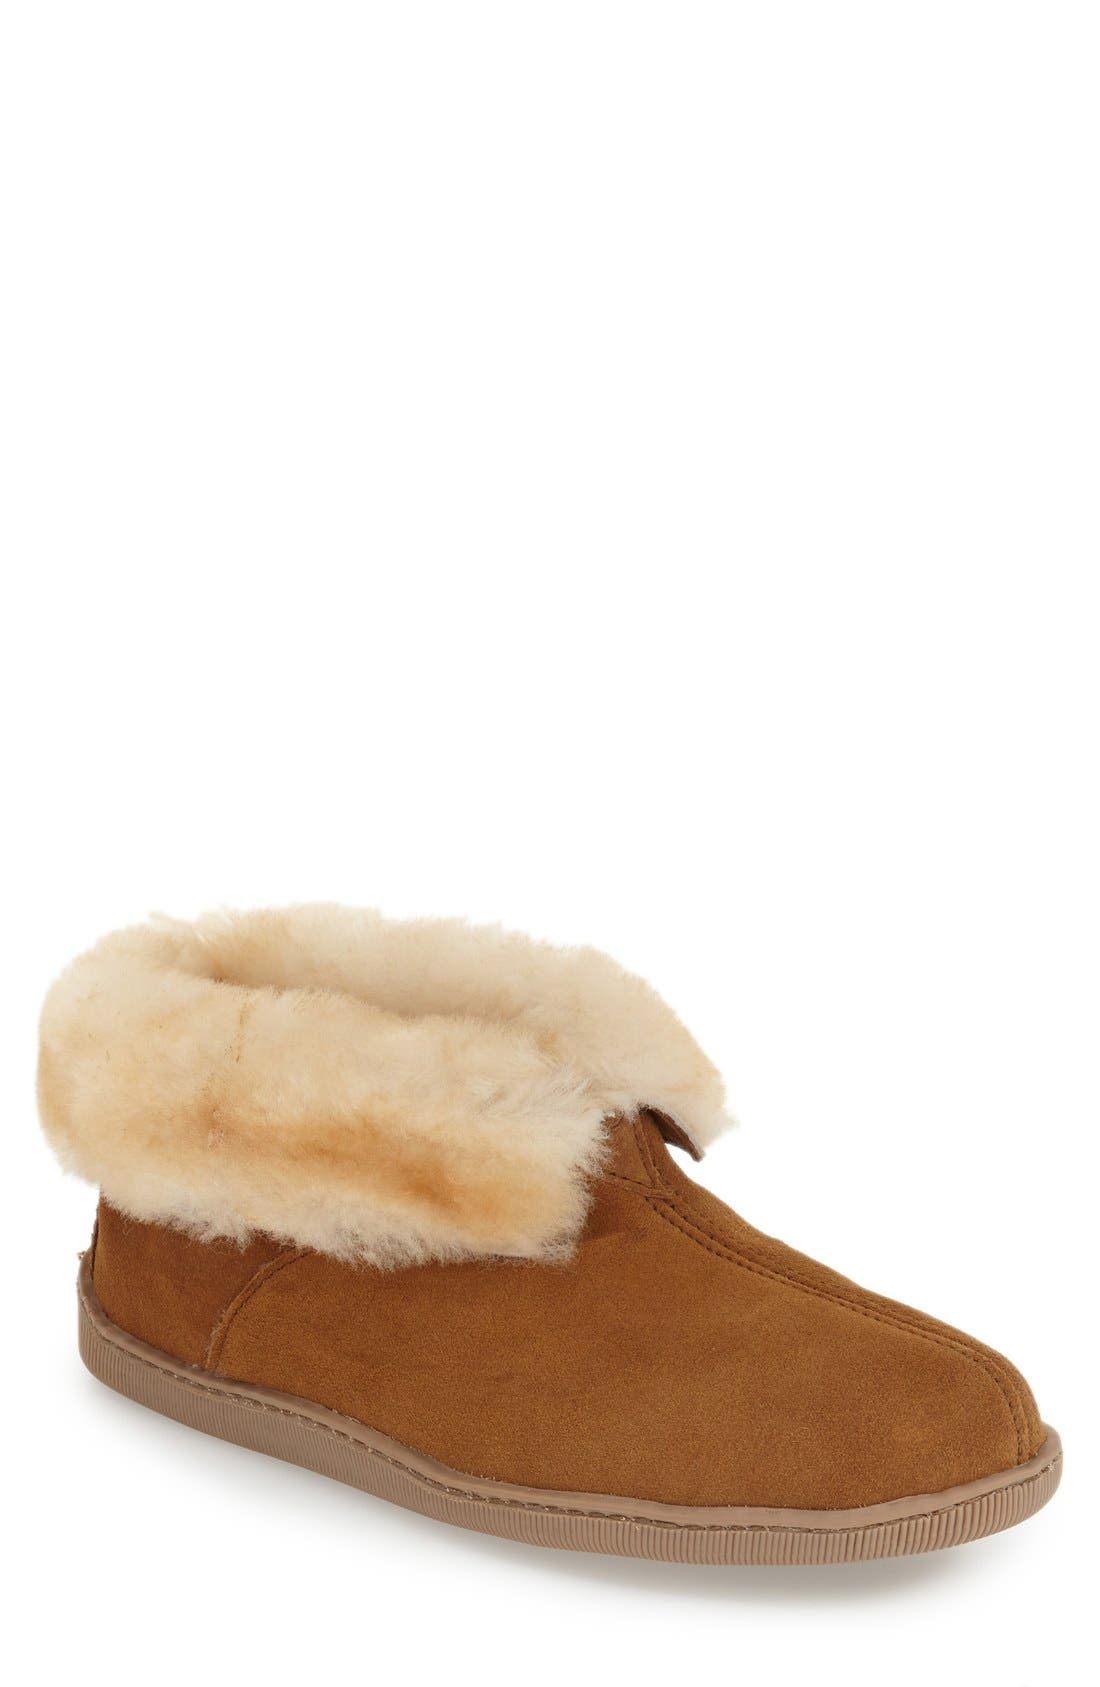 Main Image - Minnetonka Genuine Shearling Lined Ankle Boot (Men)